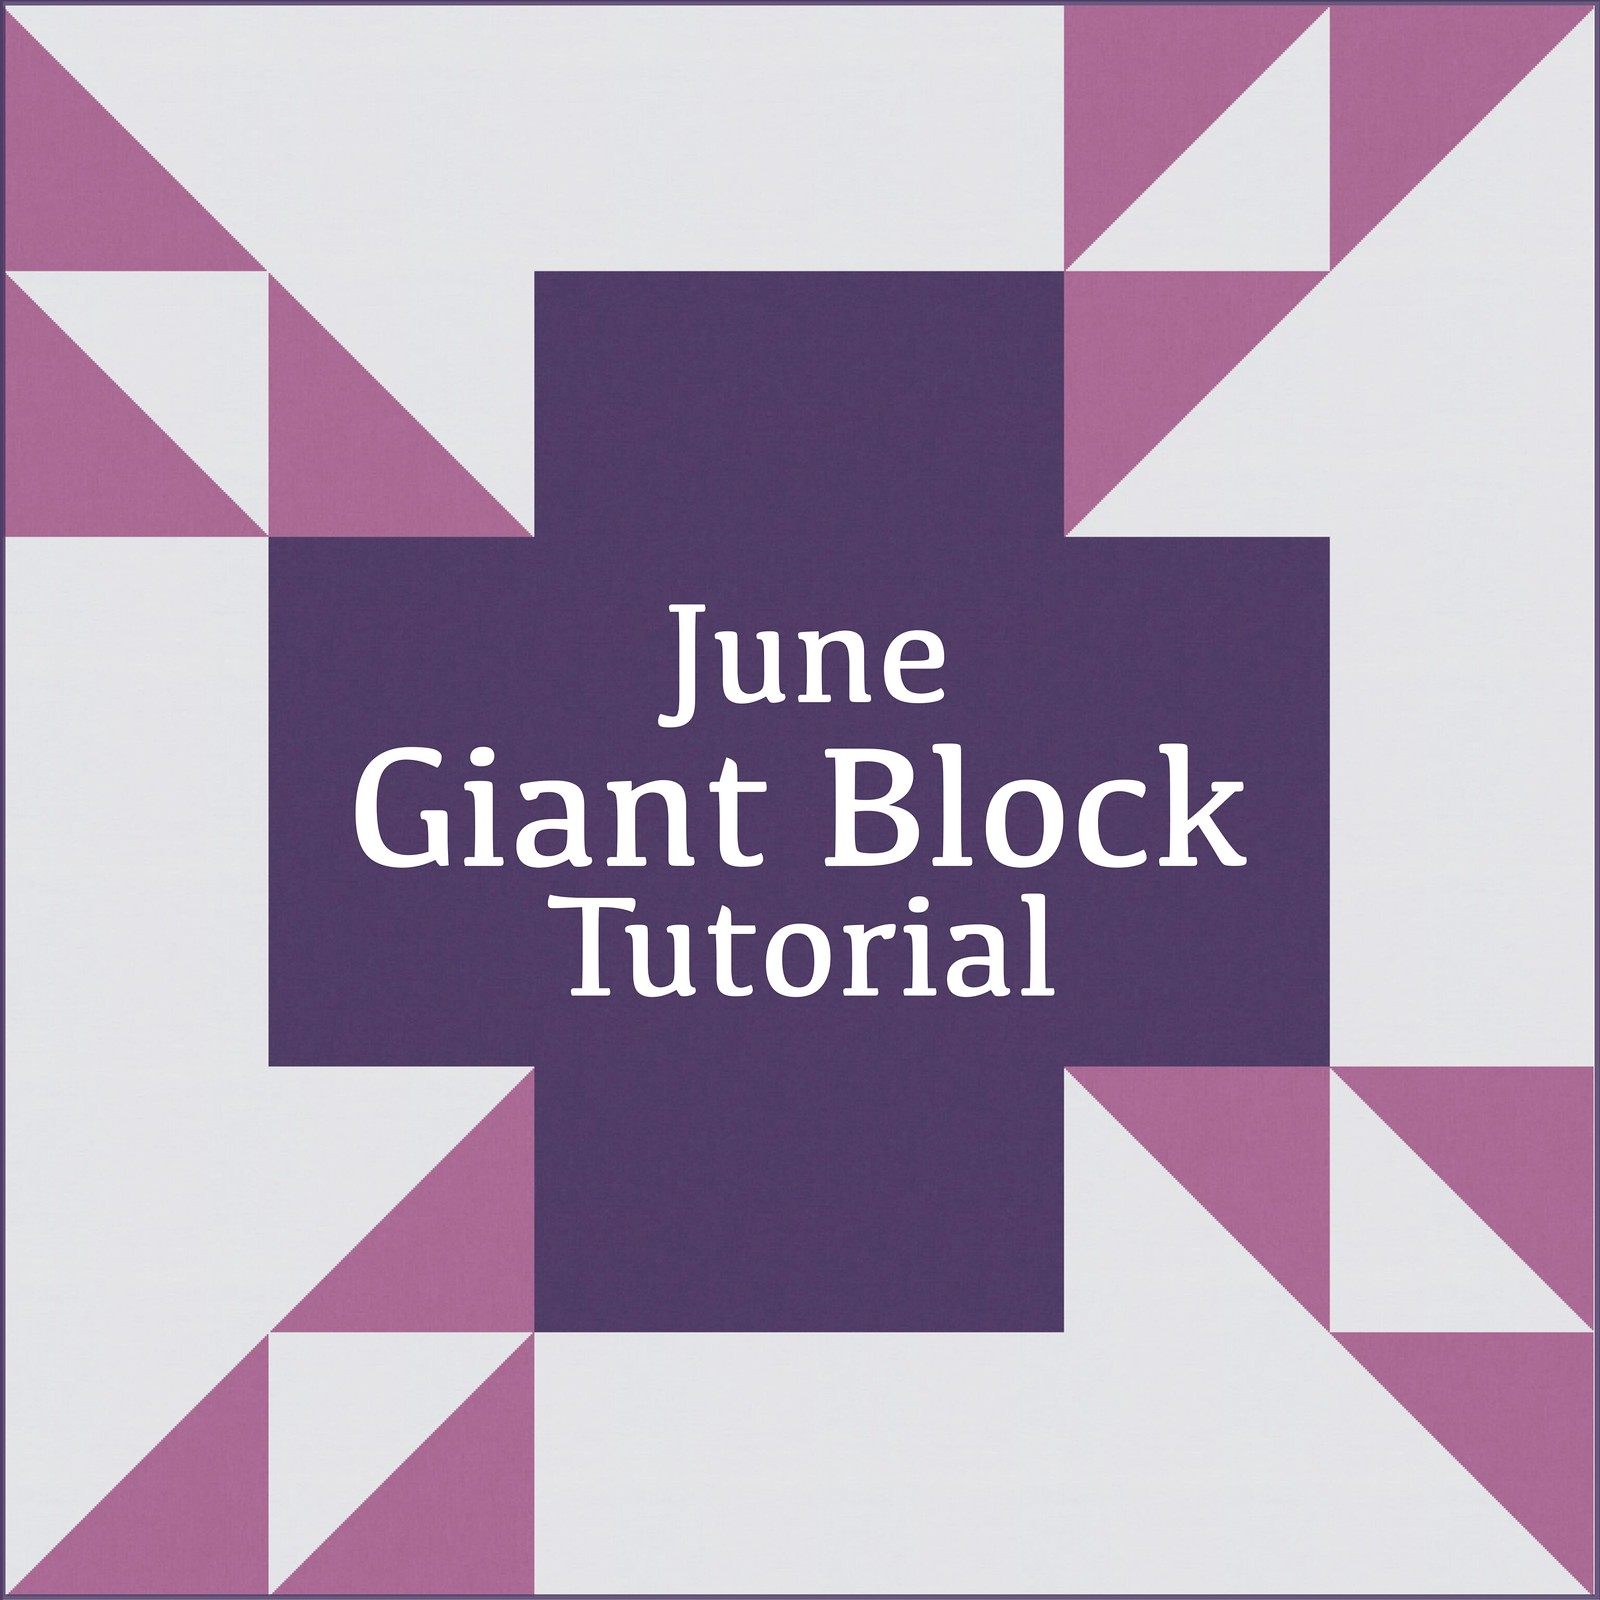 June Giant Block Tutorial